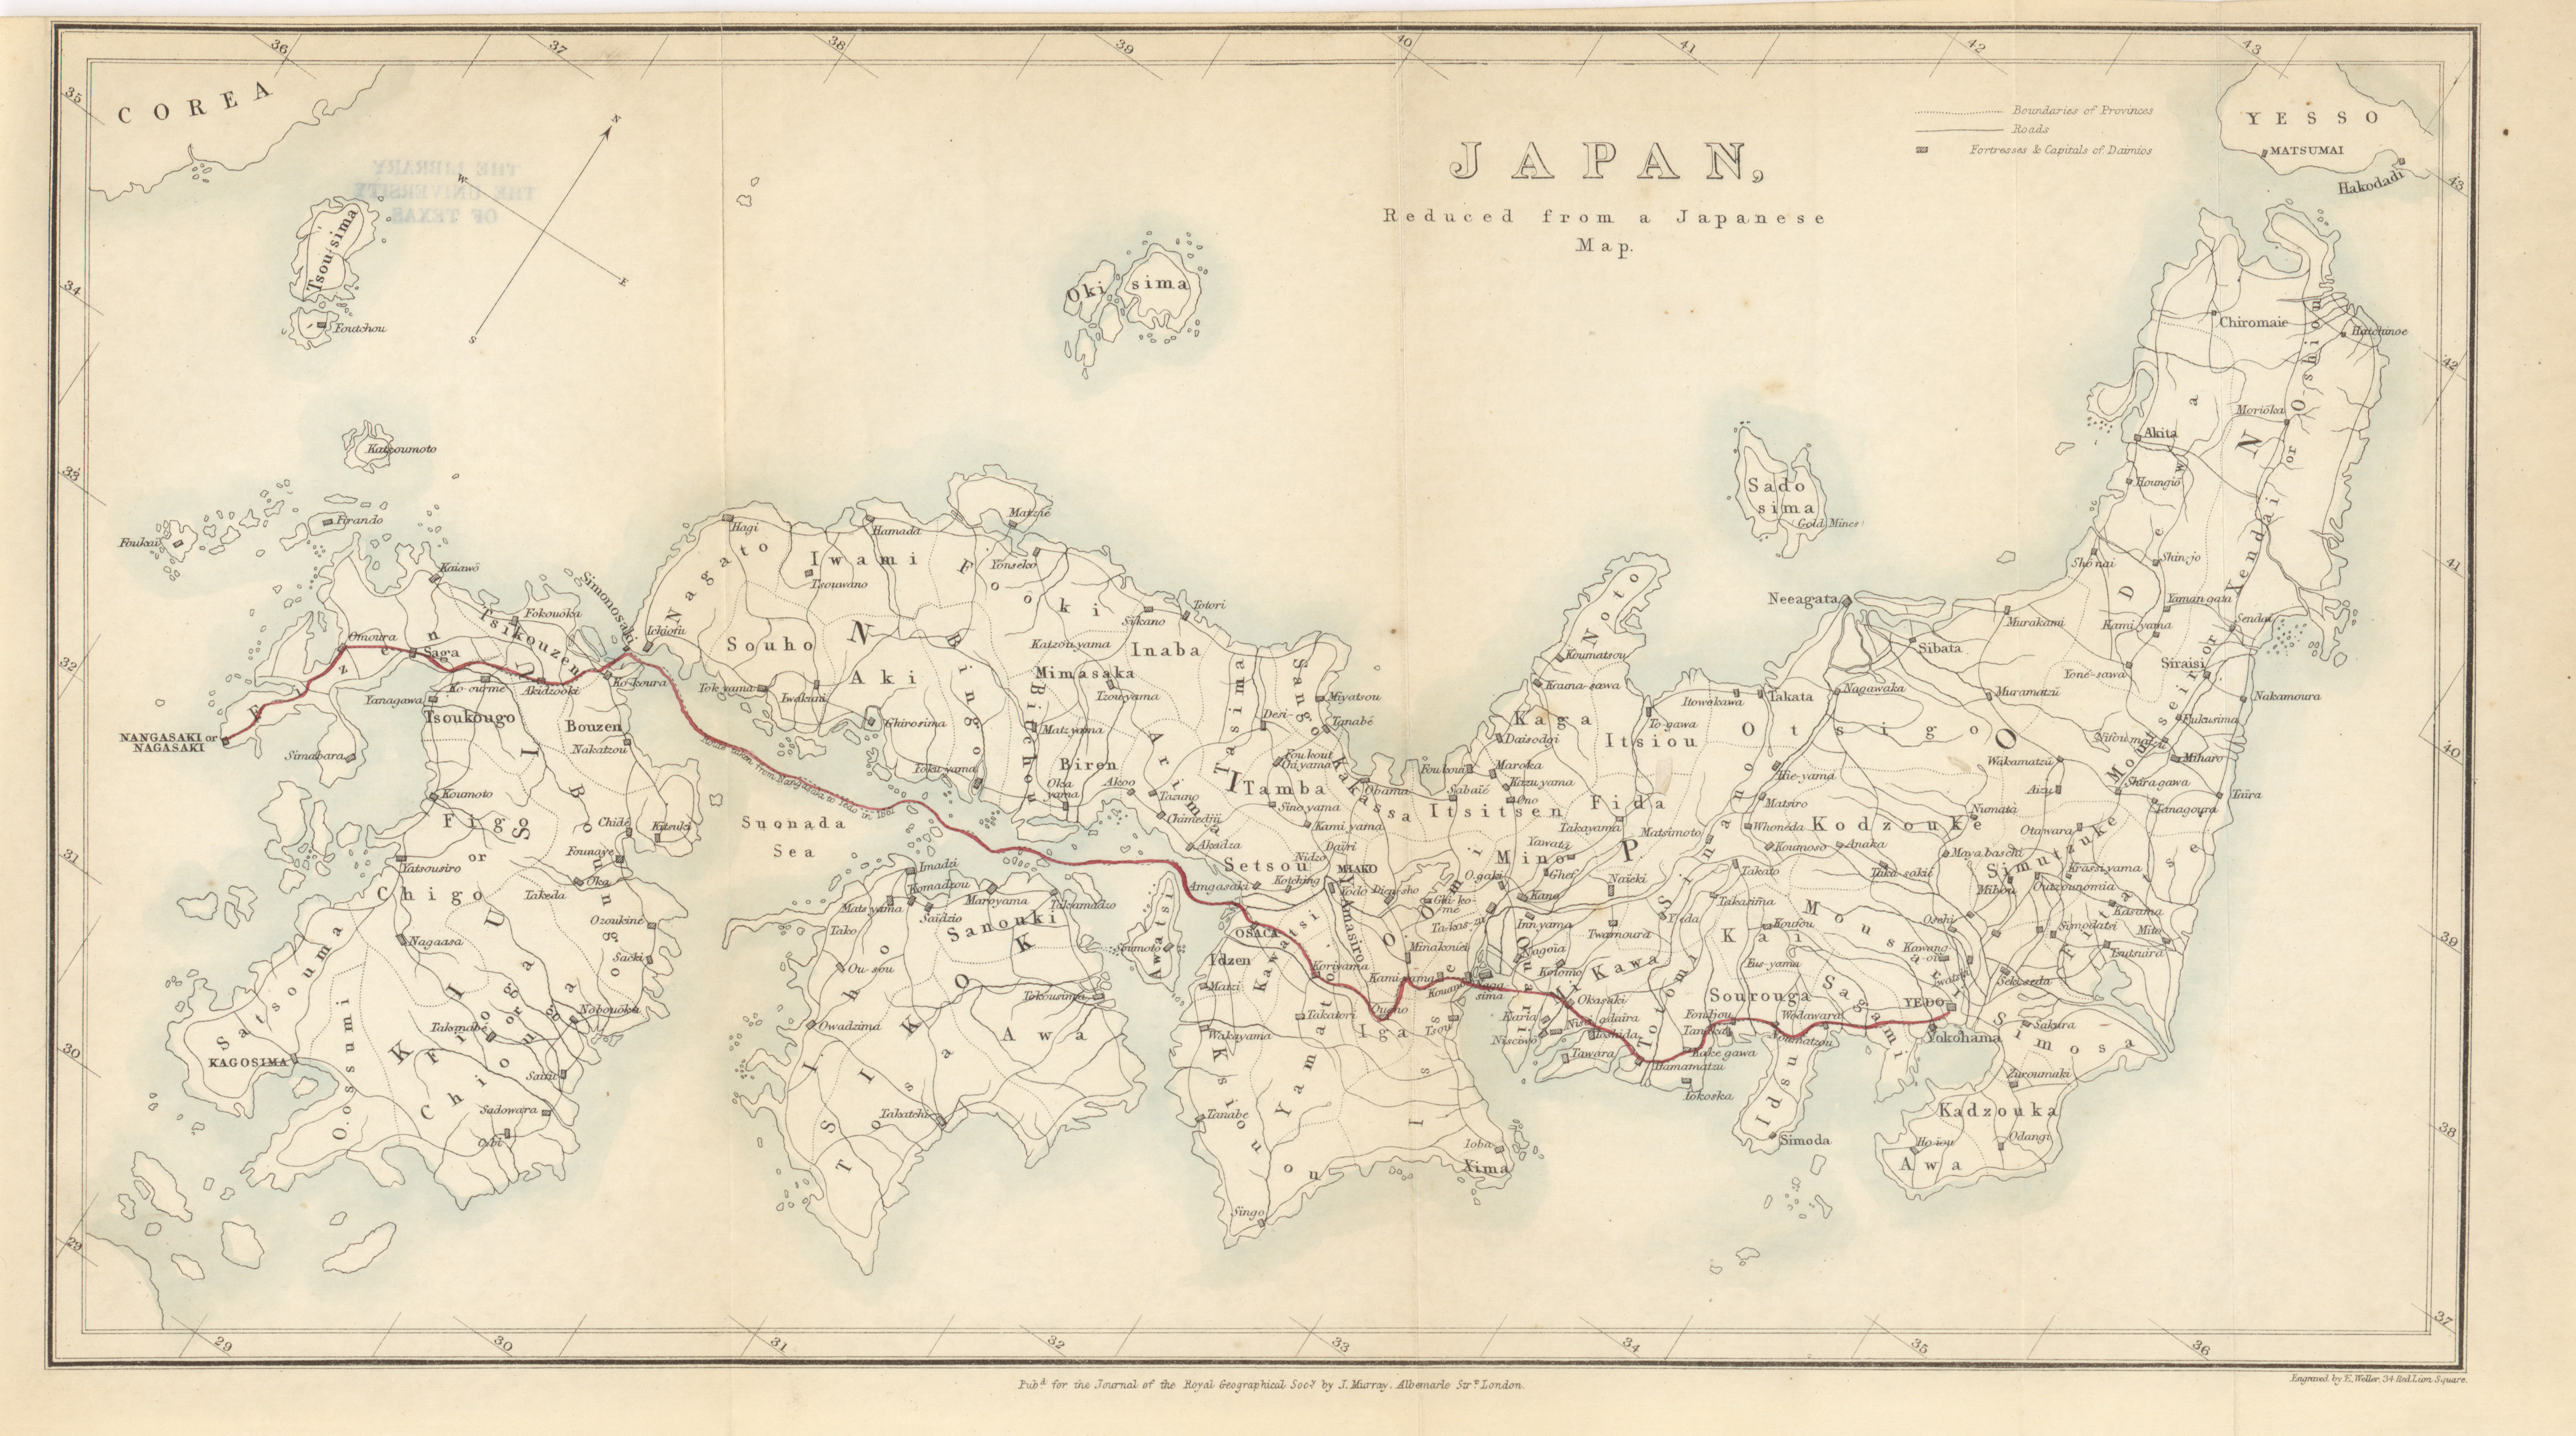 an reduced from a anese map sir rutherford al